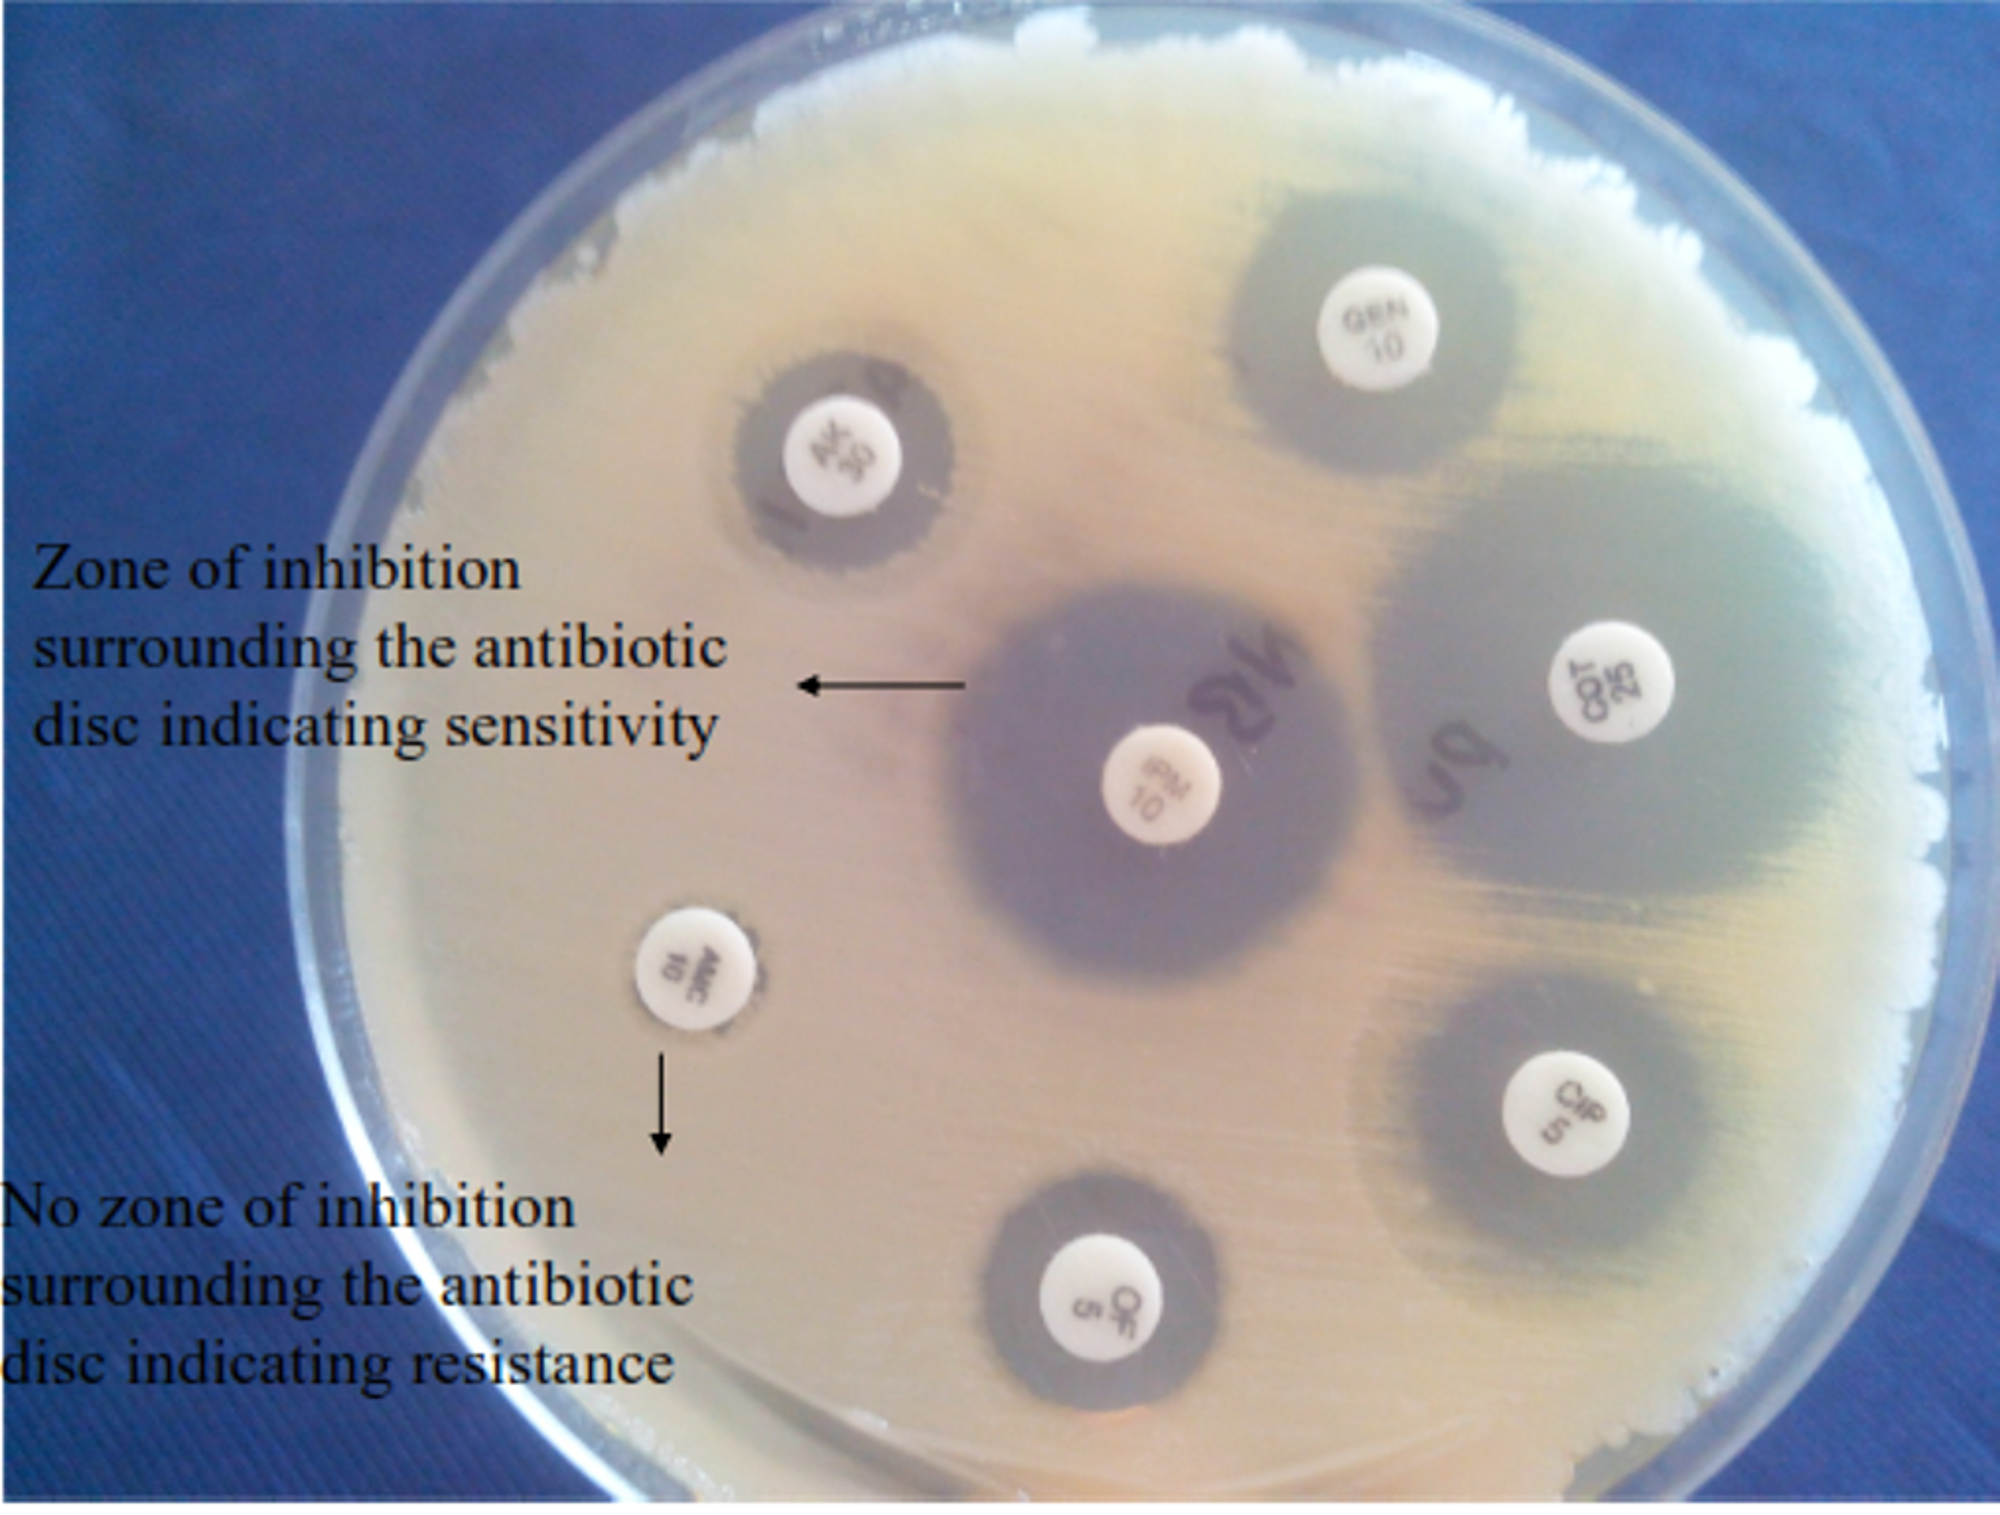 antimicrobial suscepibility pattern of escherichia coli Antibiotic susceptibility pattern of escherichia coli with the rampant use (or rather misuse) of antibiotics, there is a drastic change in the susceptibility pattern.